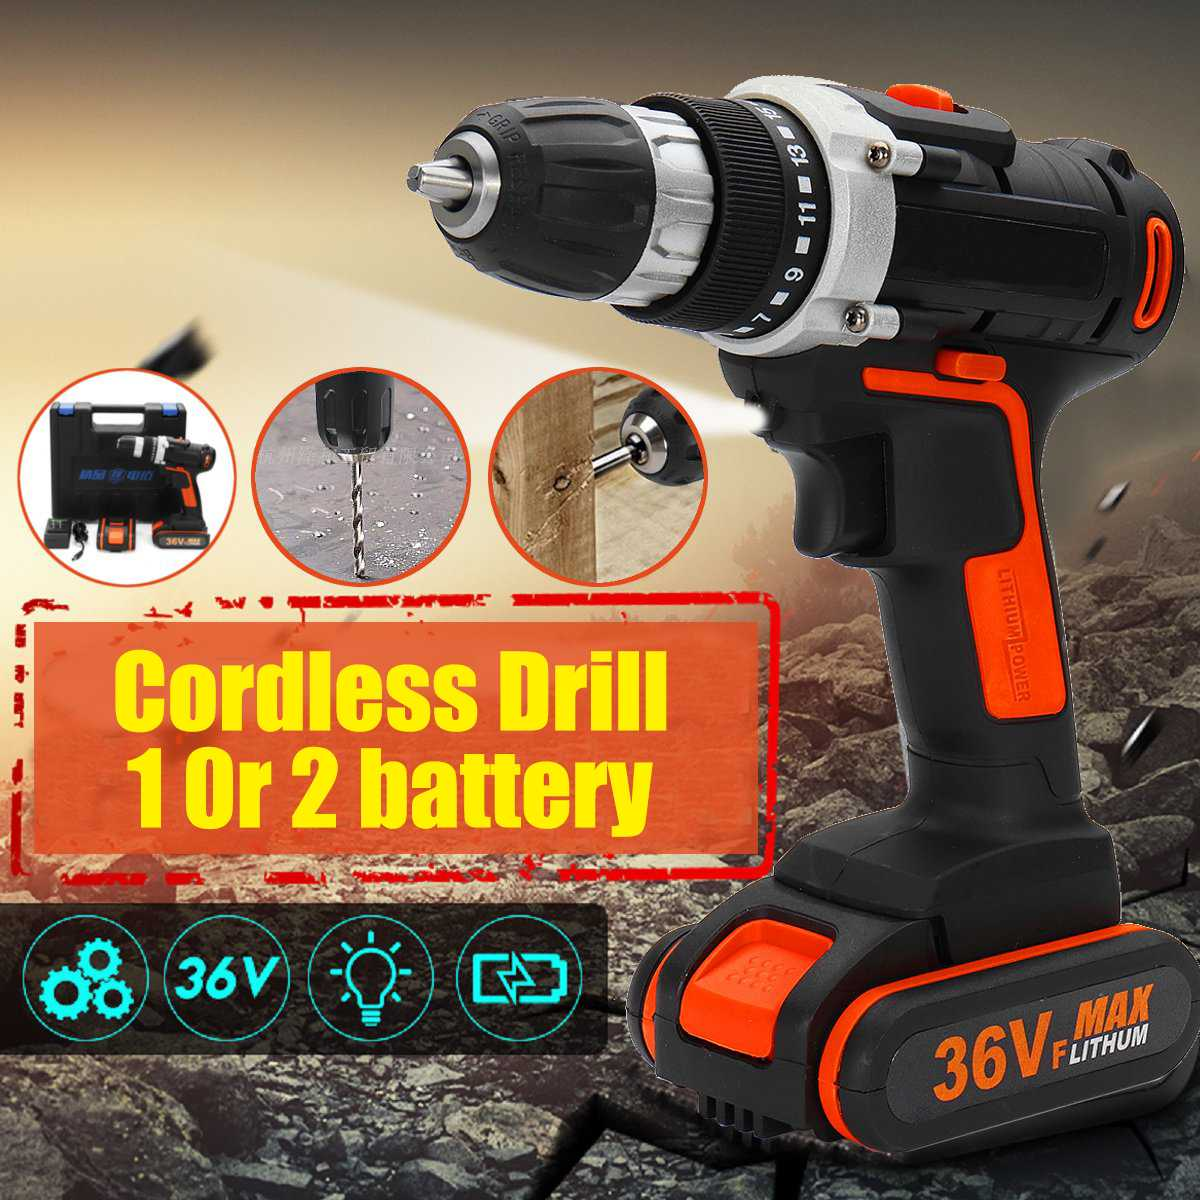 36VF Electric Cordless Drill 1 or 2 Li-Ion Battery 15+1 Clutches Control Power Drills Repair Tools36VF Electric Cordless Drill 1 or 2 Li-Ion Battery 15+1 Clutches Control Power Drills Repair Tools